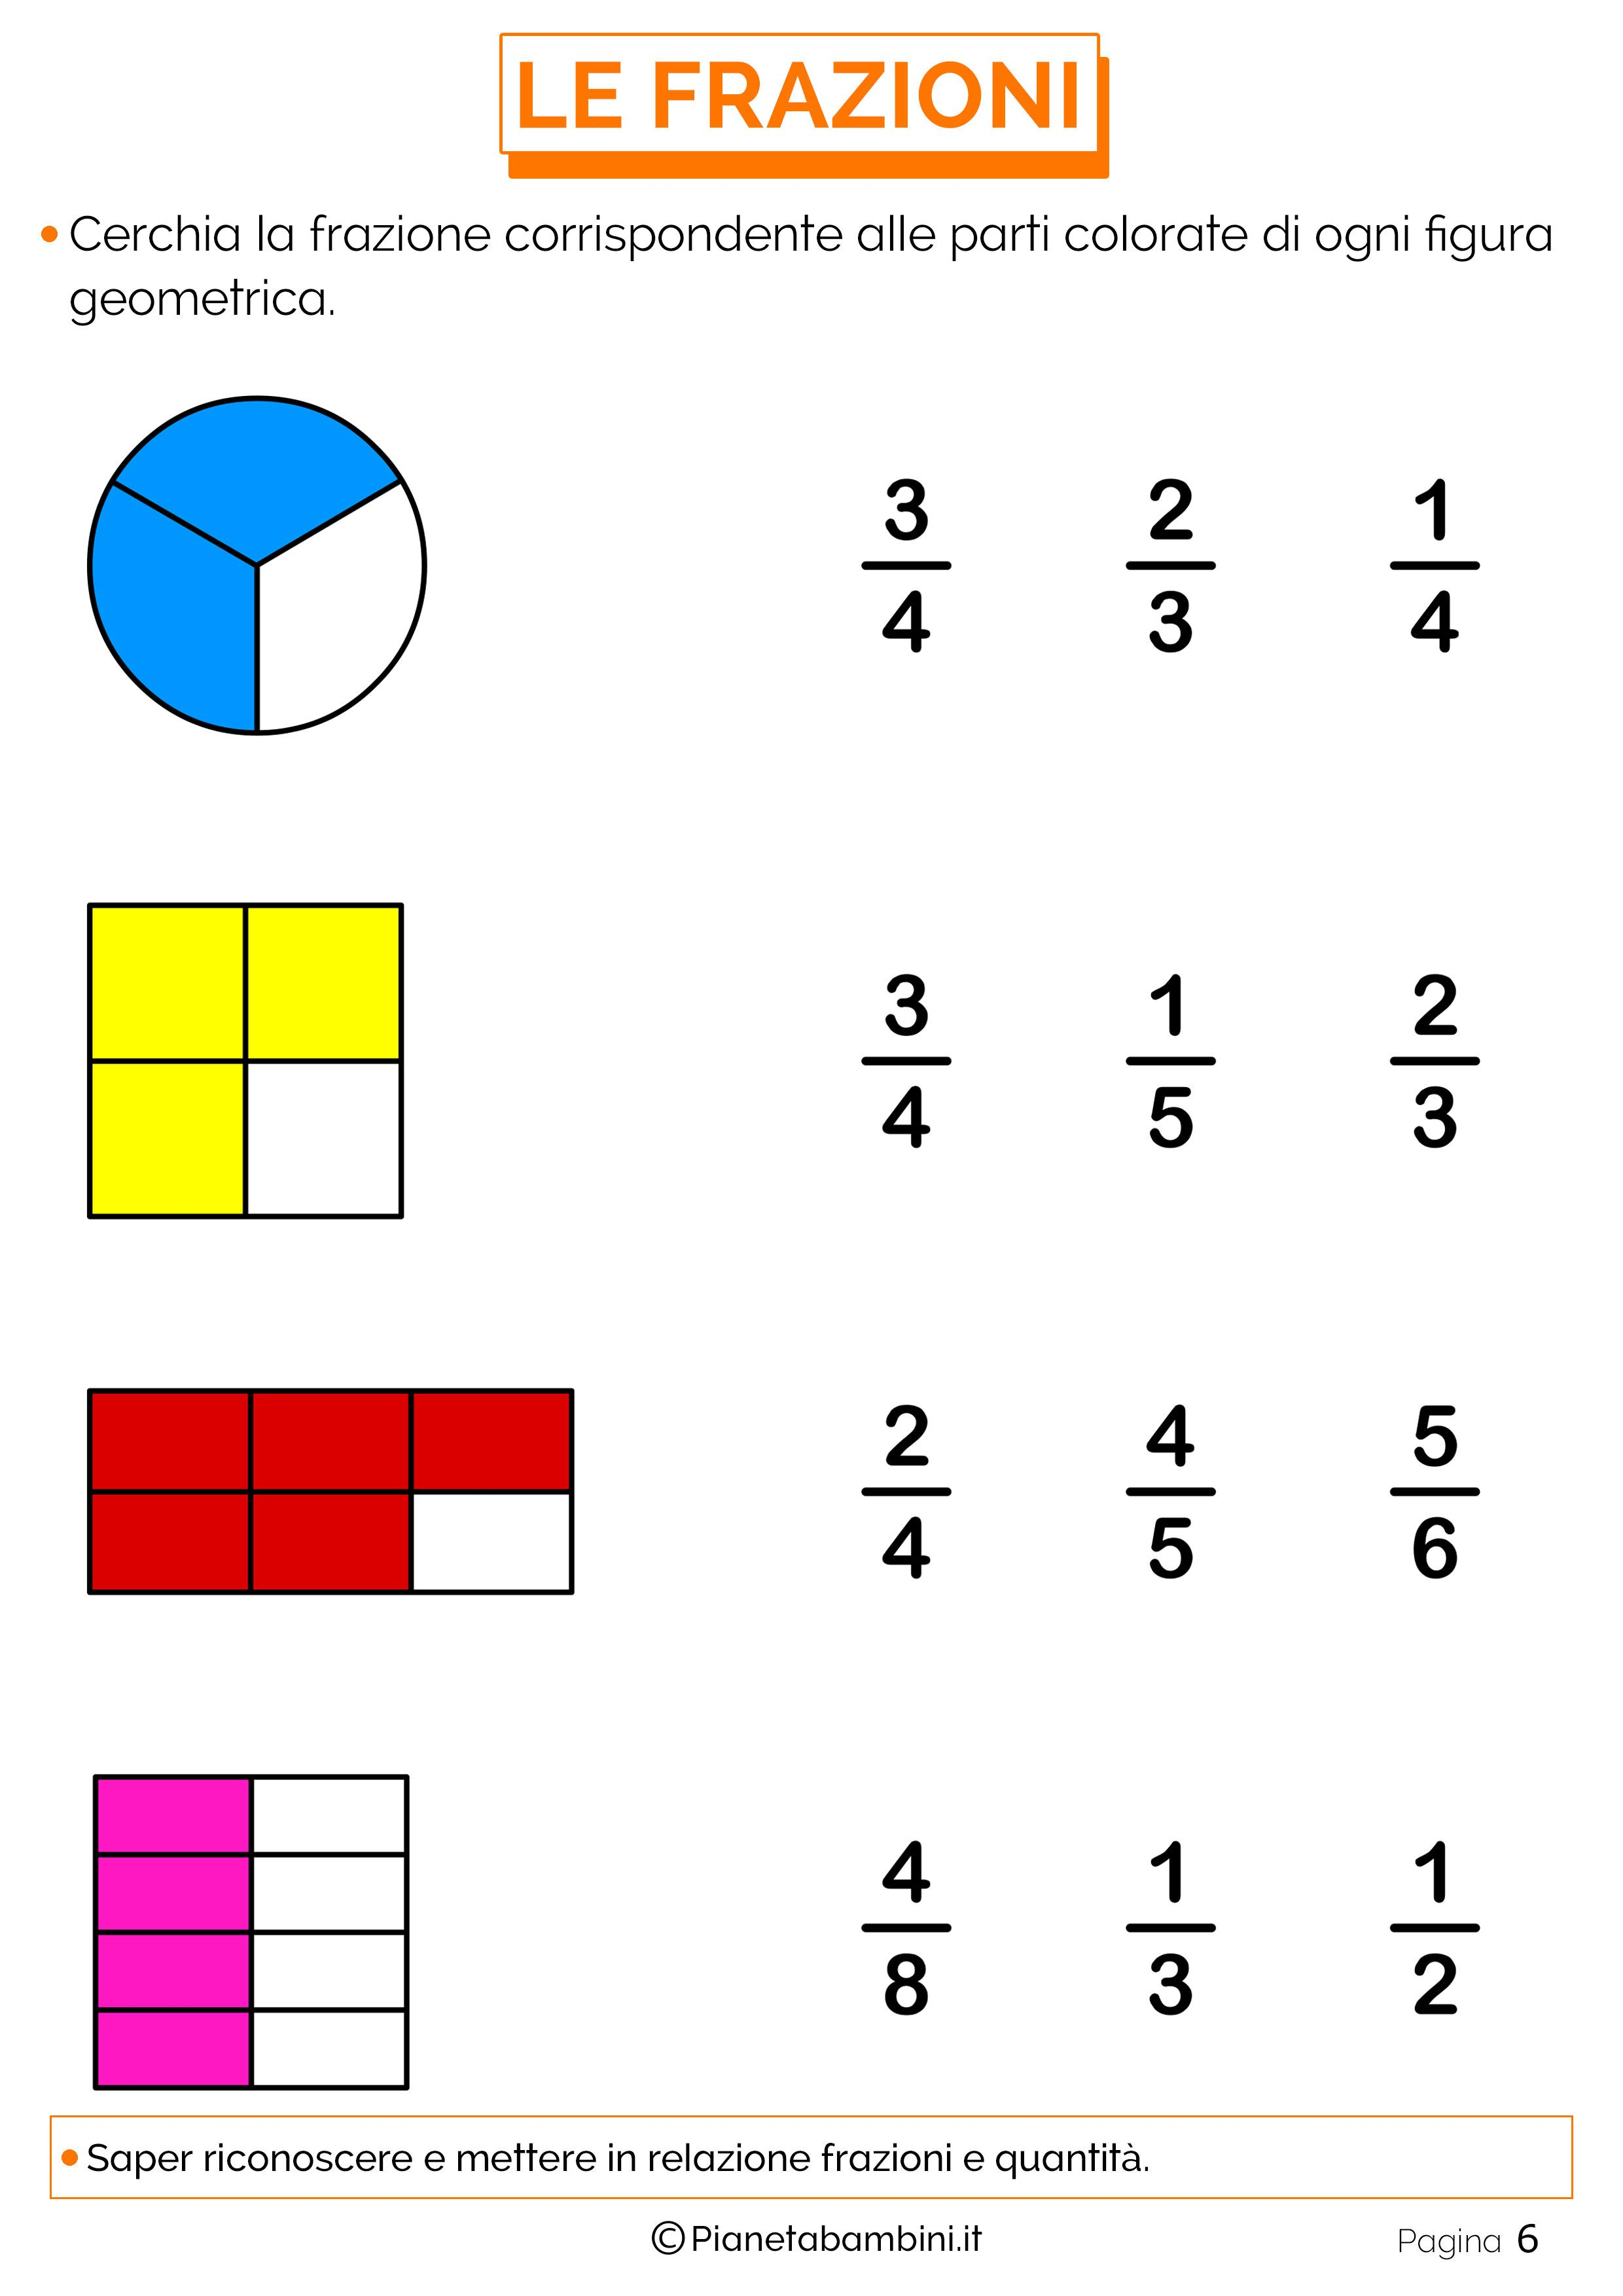 worksheet Fraction Worksheets 2nd Grade httppianetabambini itwp contentuploads201602esercizi explore free worksheets for kids and more